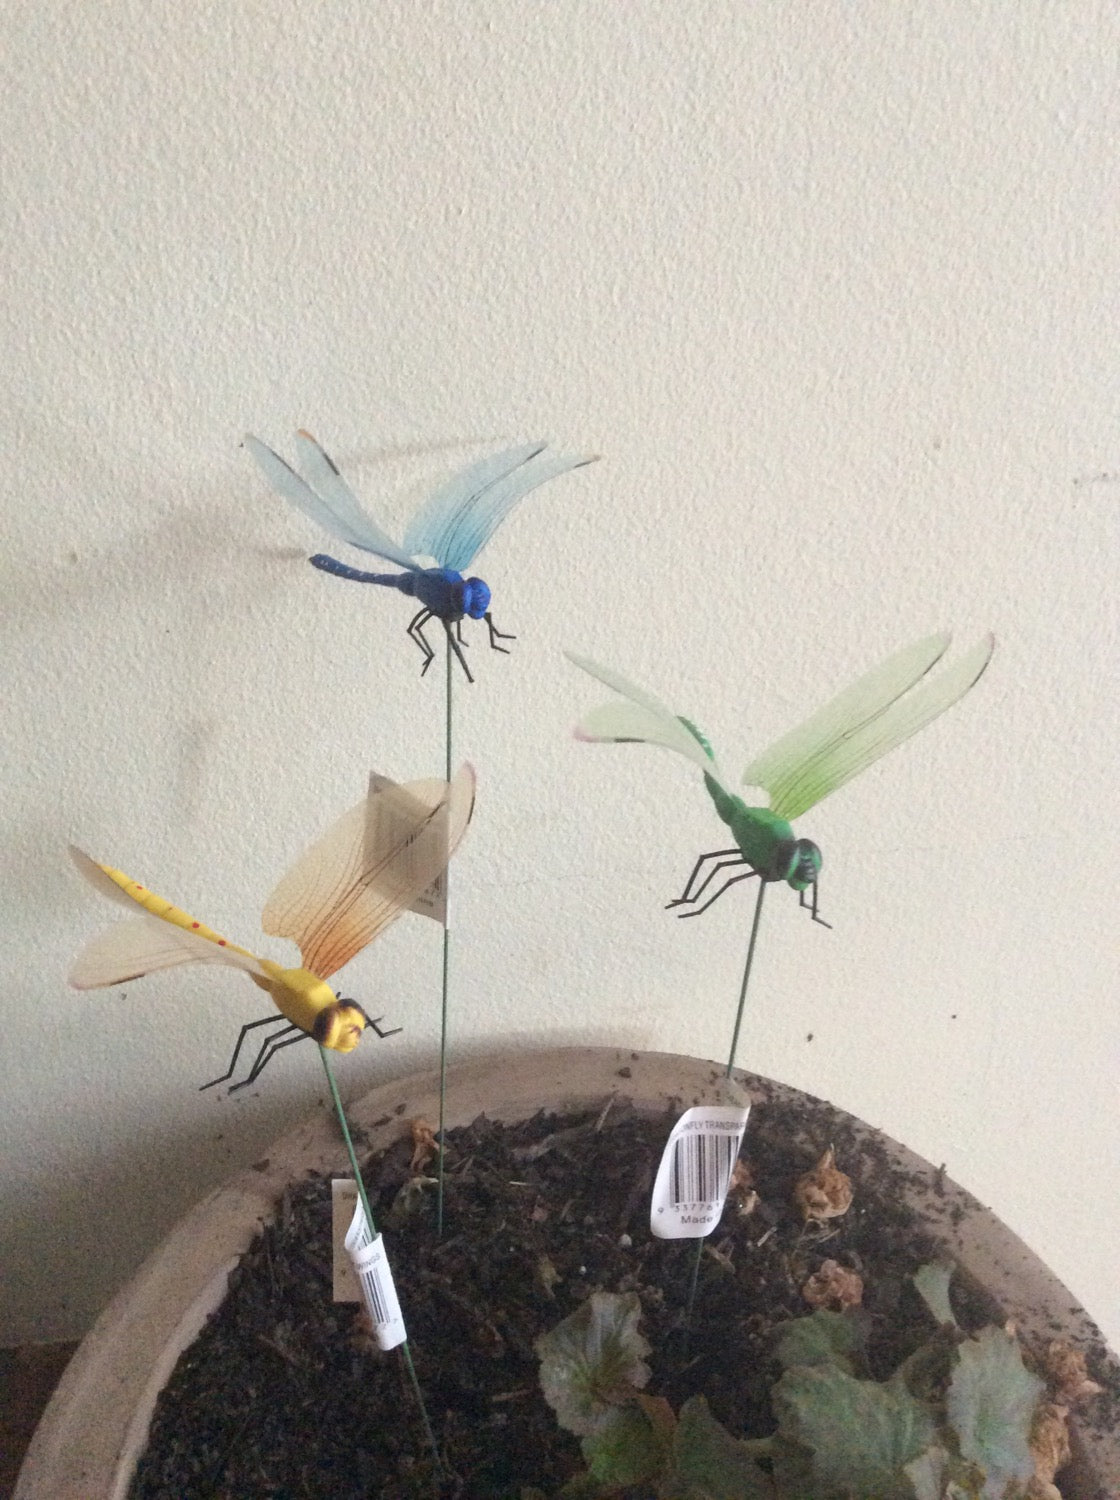 Garden Accessories - Dragonfly with  Transparent wings